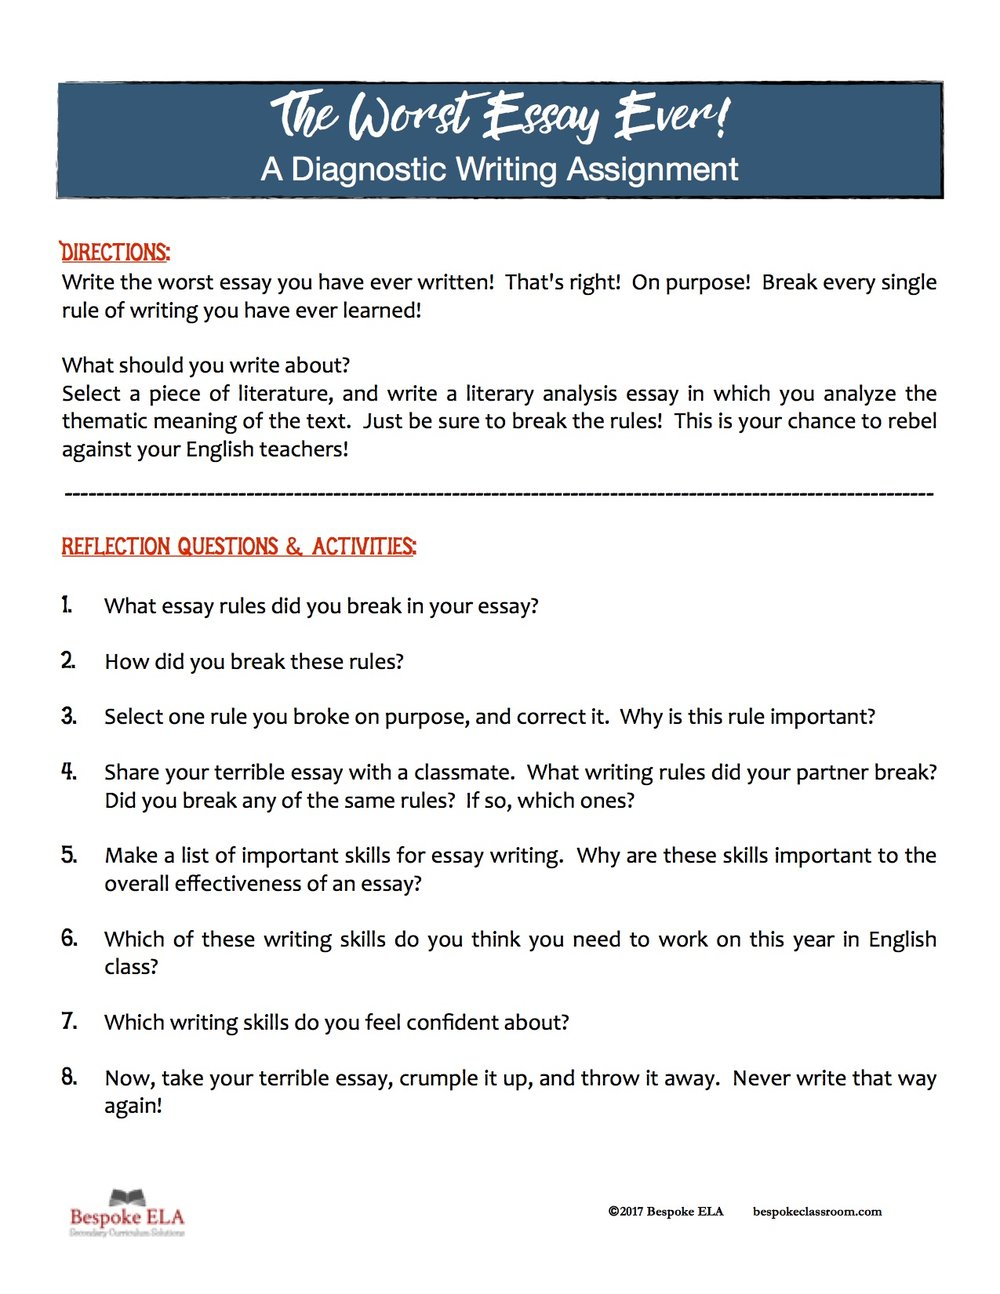 Essay writing form 4 picture 6